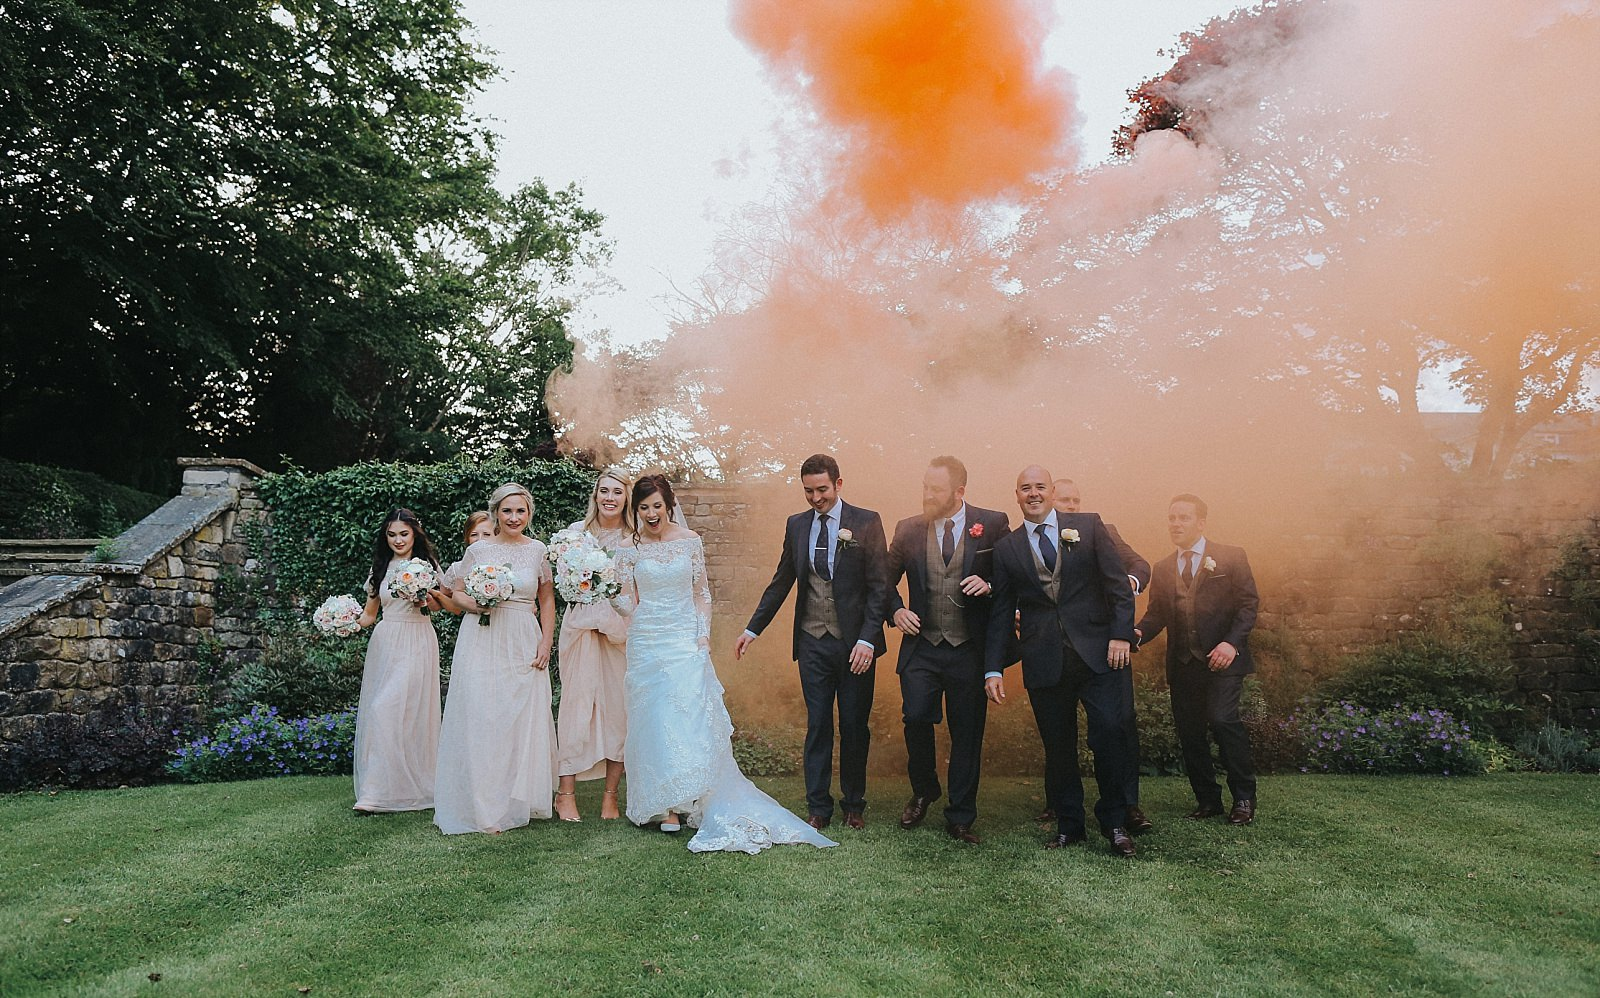 eaves hall wedding photographer uses smoke bombs